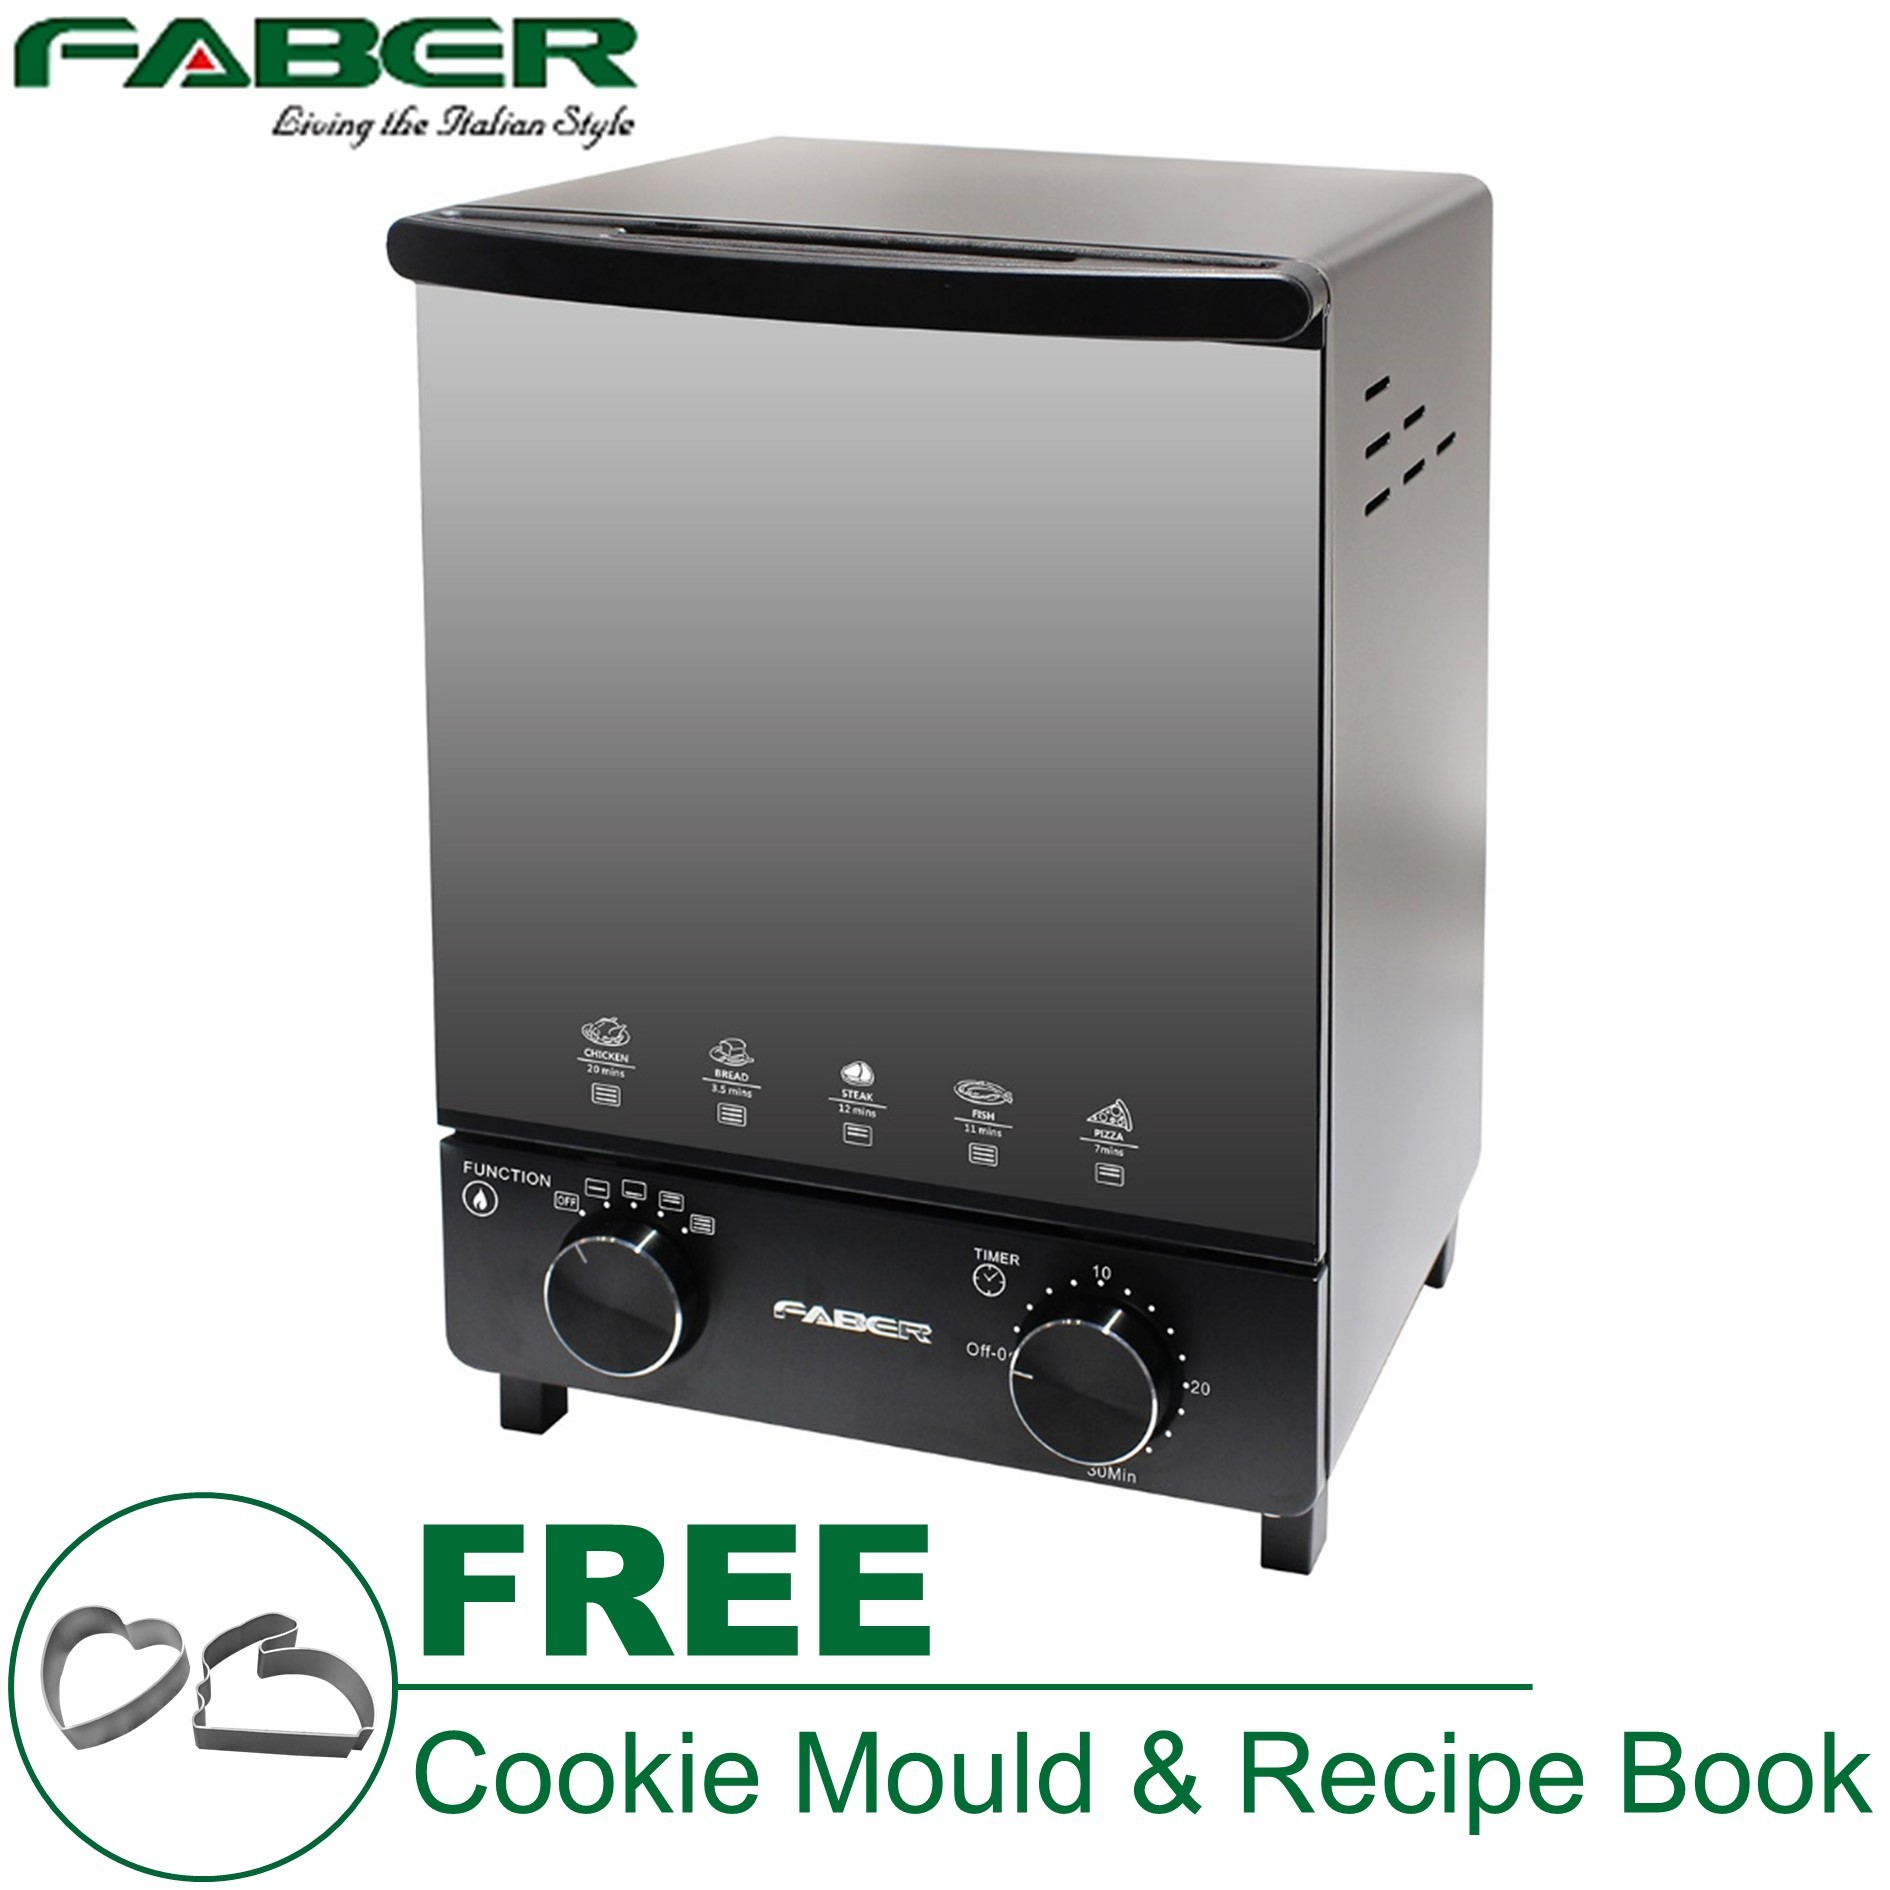 Kitchen Small Appliance Stores Faber 12l Electric Oven Toaster Feo Cuisine 12 Bk Free Gifts